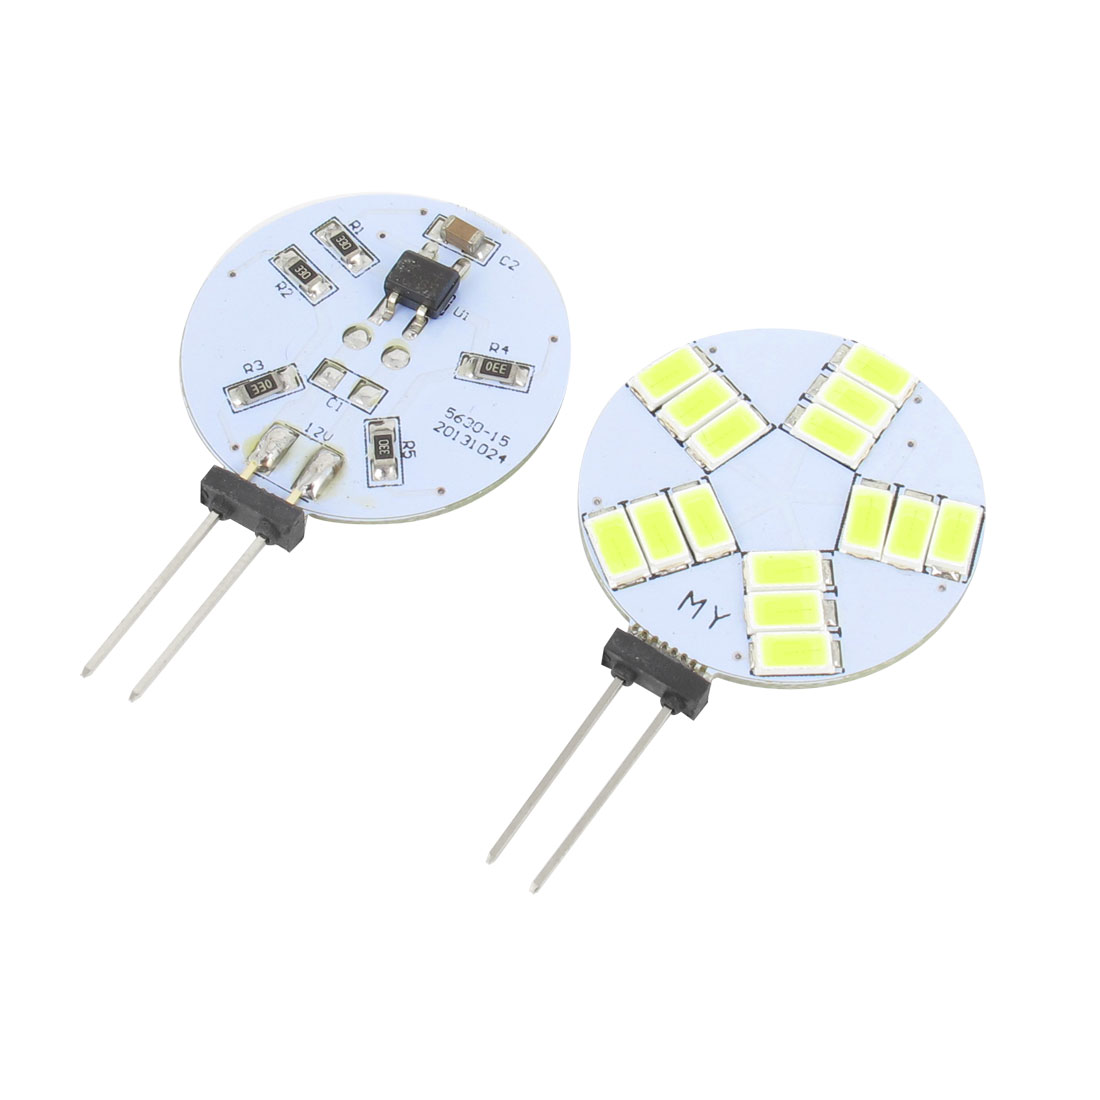 2 Pcs Vehicles White 15 SMD LEDs 5630 G4 Side Pin Lamp Light Internal